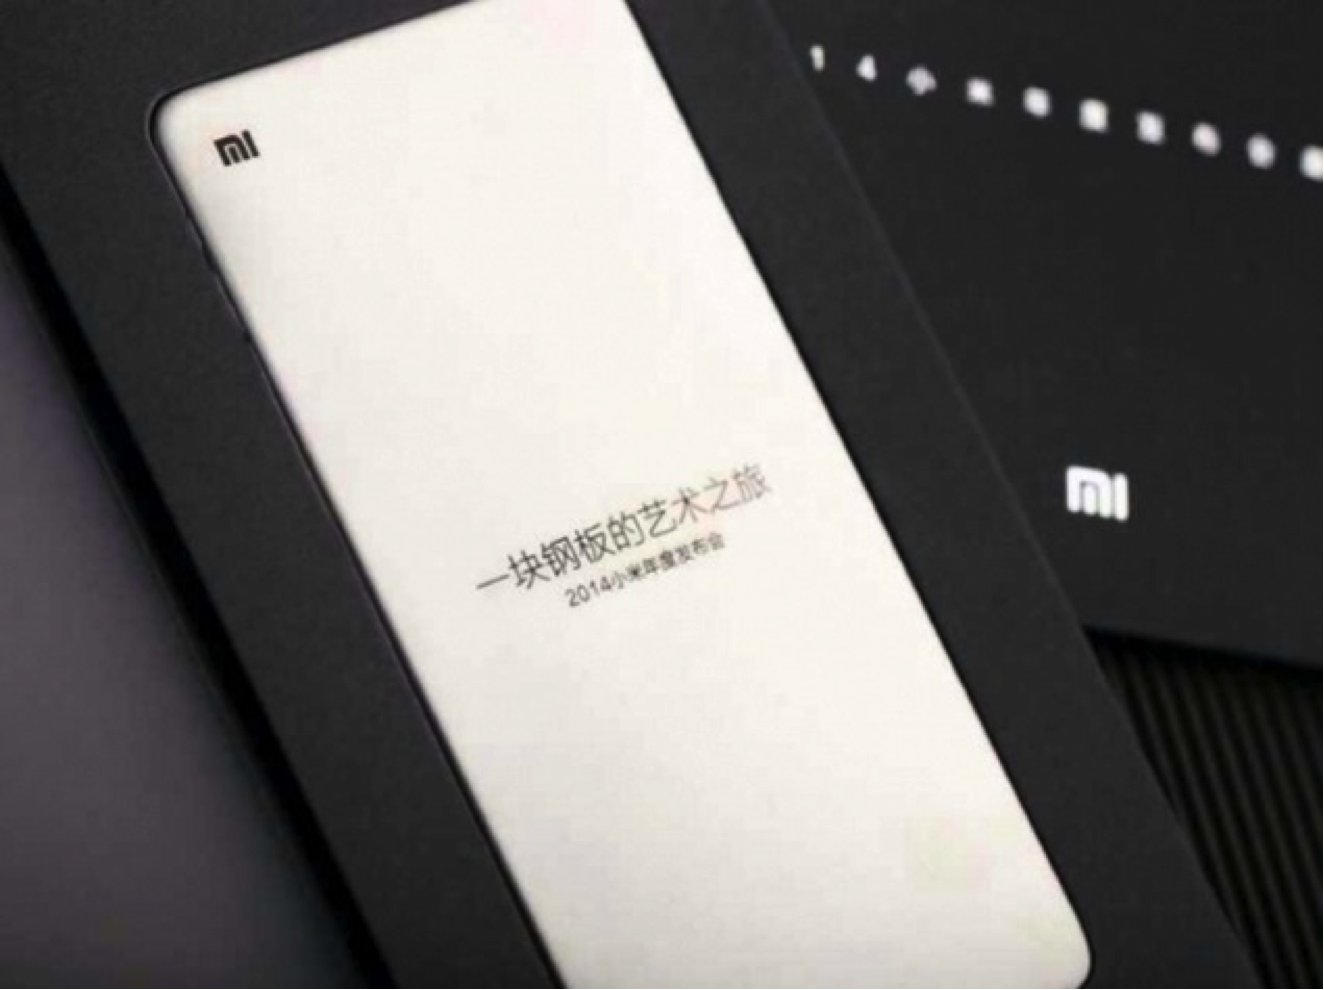 Xiaomi looks all set to launch the Mi4 globally